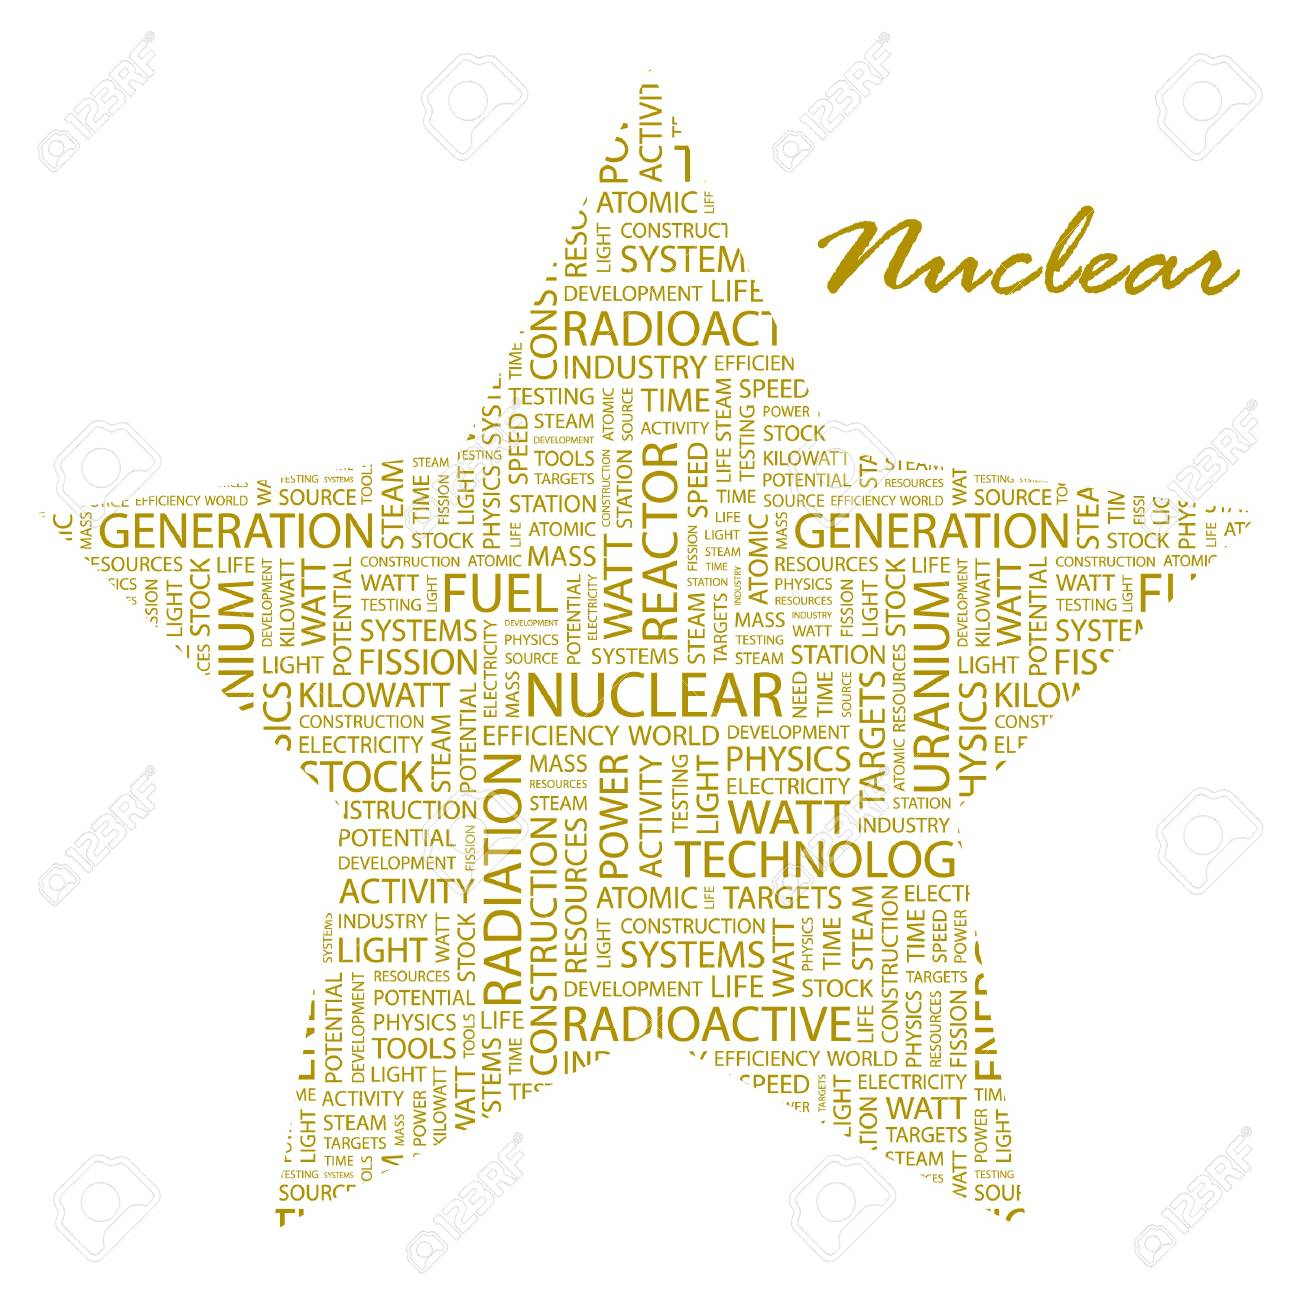 NUCLEAR. Word collage on white background. Stock Vector - 9906559